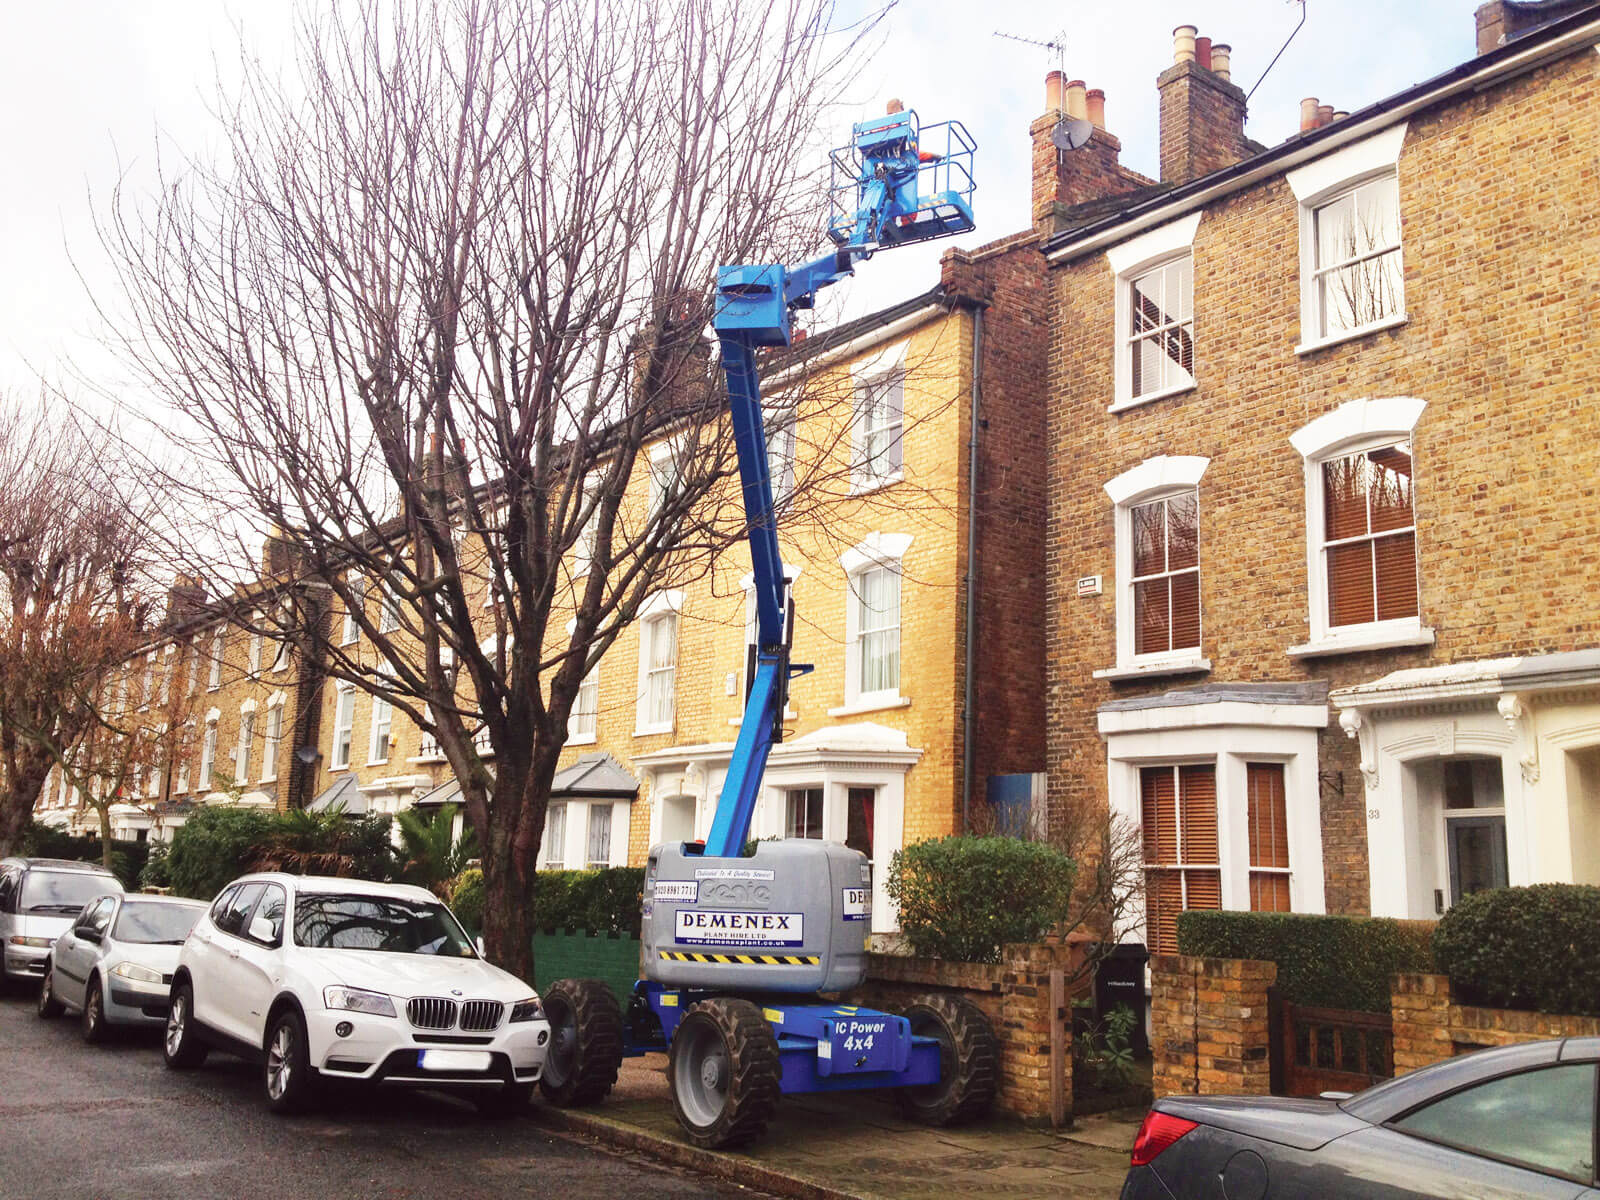 Cherry picker hire cost London